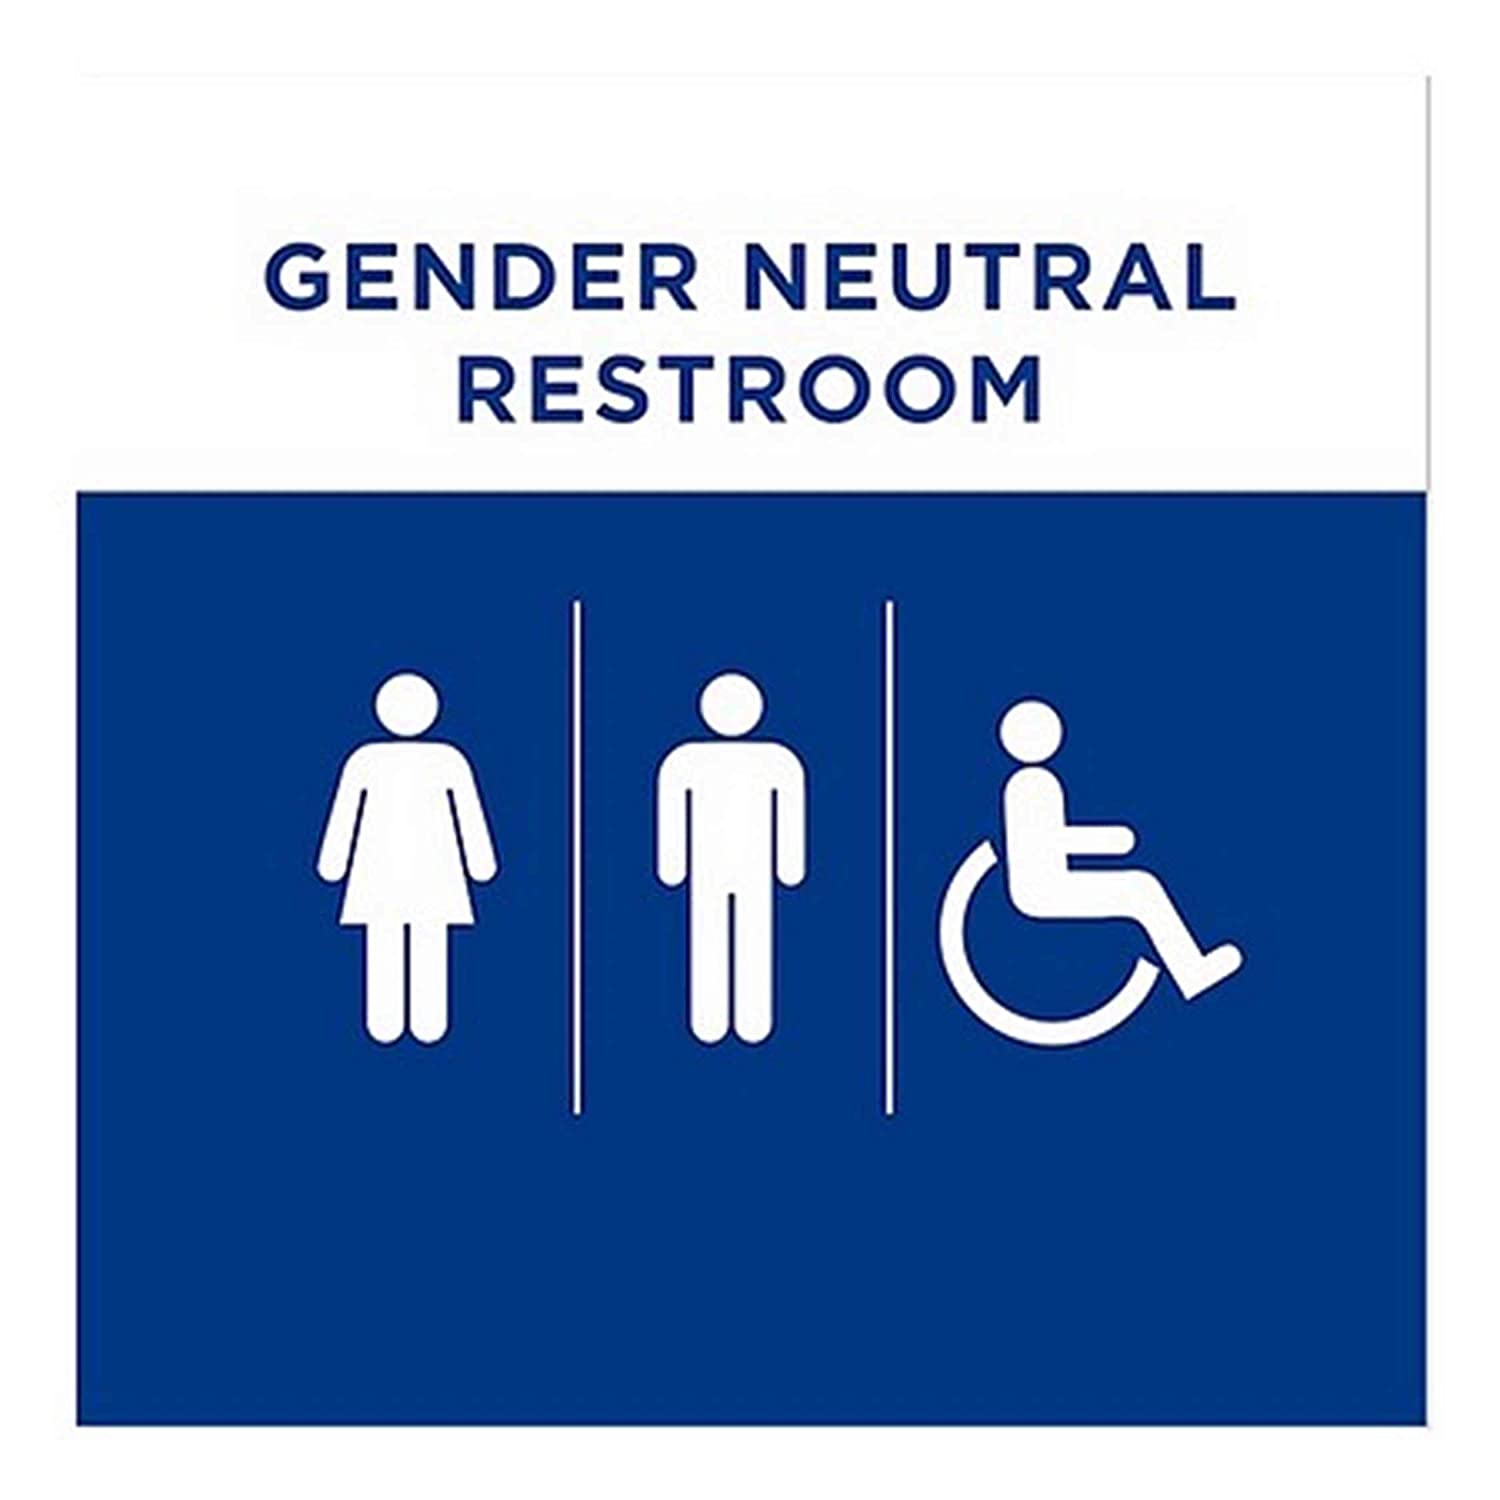 CGSignLab 2439179_5gfxw_24x24_None Gender Neutral and Handicapped Restroom Sign in Blue Repositionable Opaque White 1st Surface Static-Cling Non-Adhesive Window Decal, Vinyl, 24 x 24 (Pack of 5)